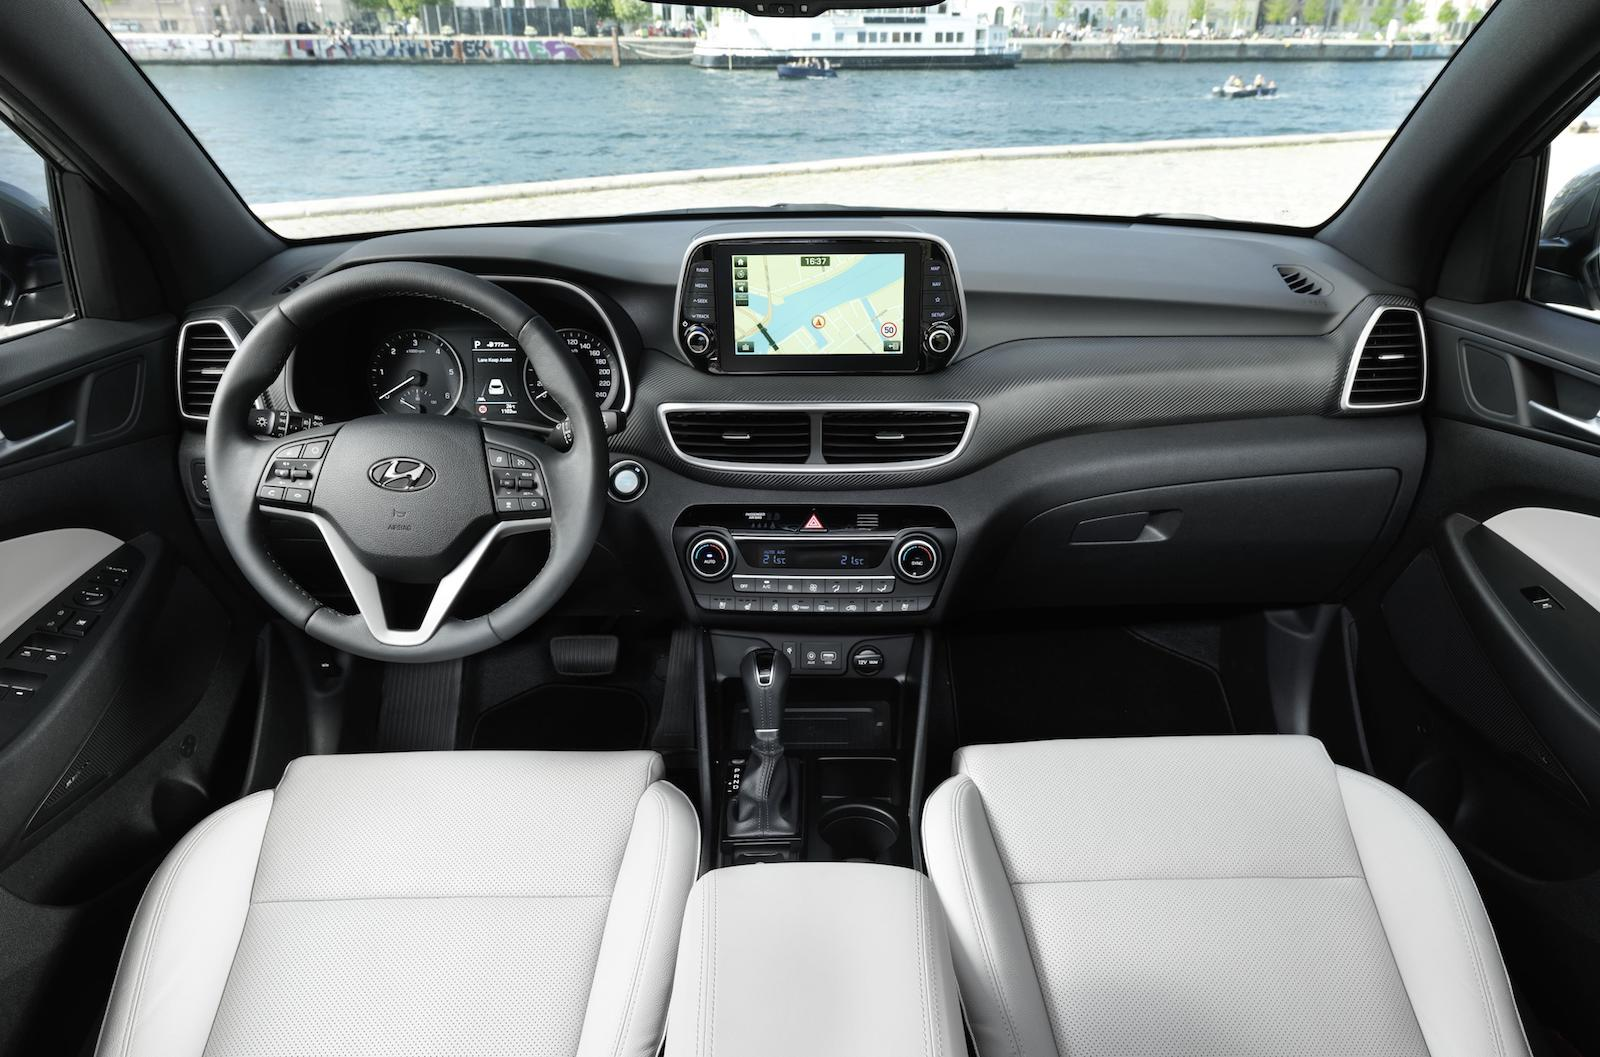 2019 hyundai tucson interior - Hyundai tucson interior pictures ...